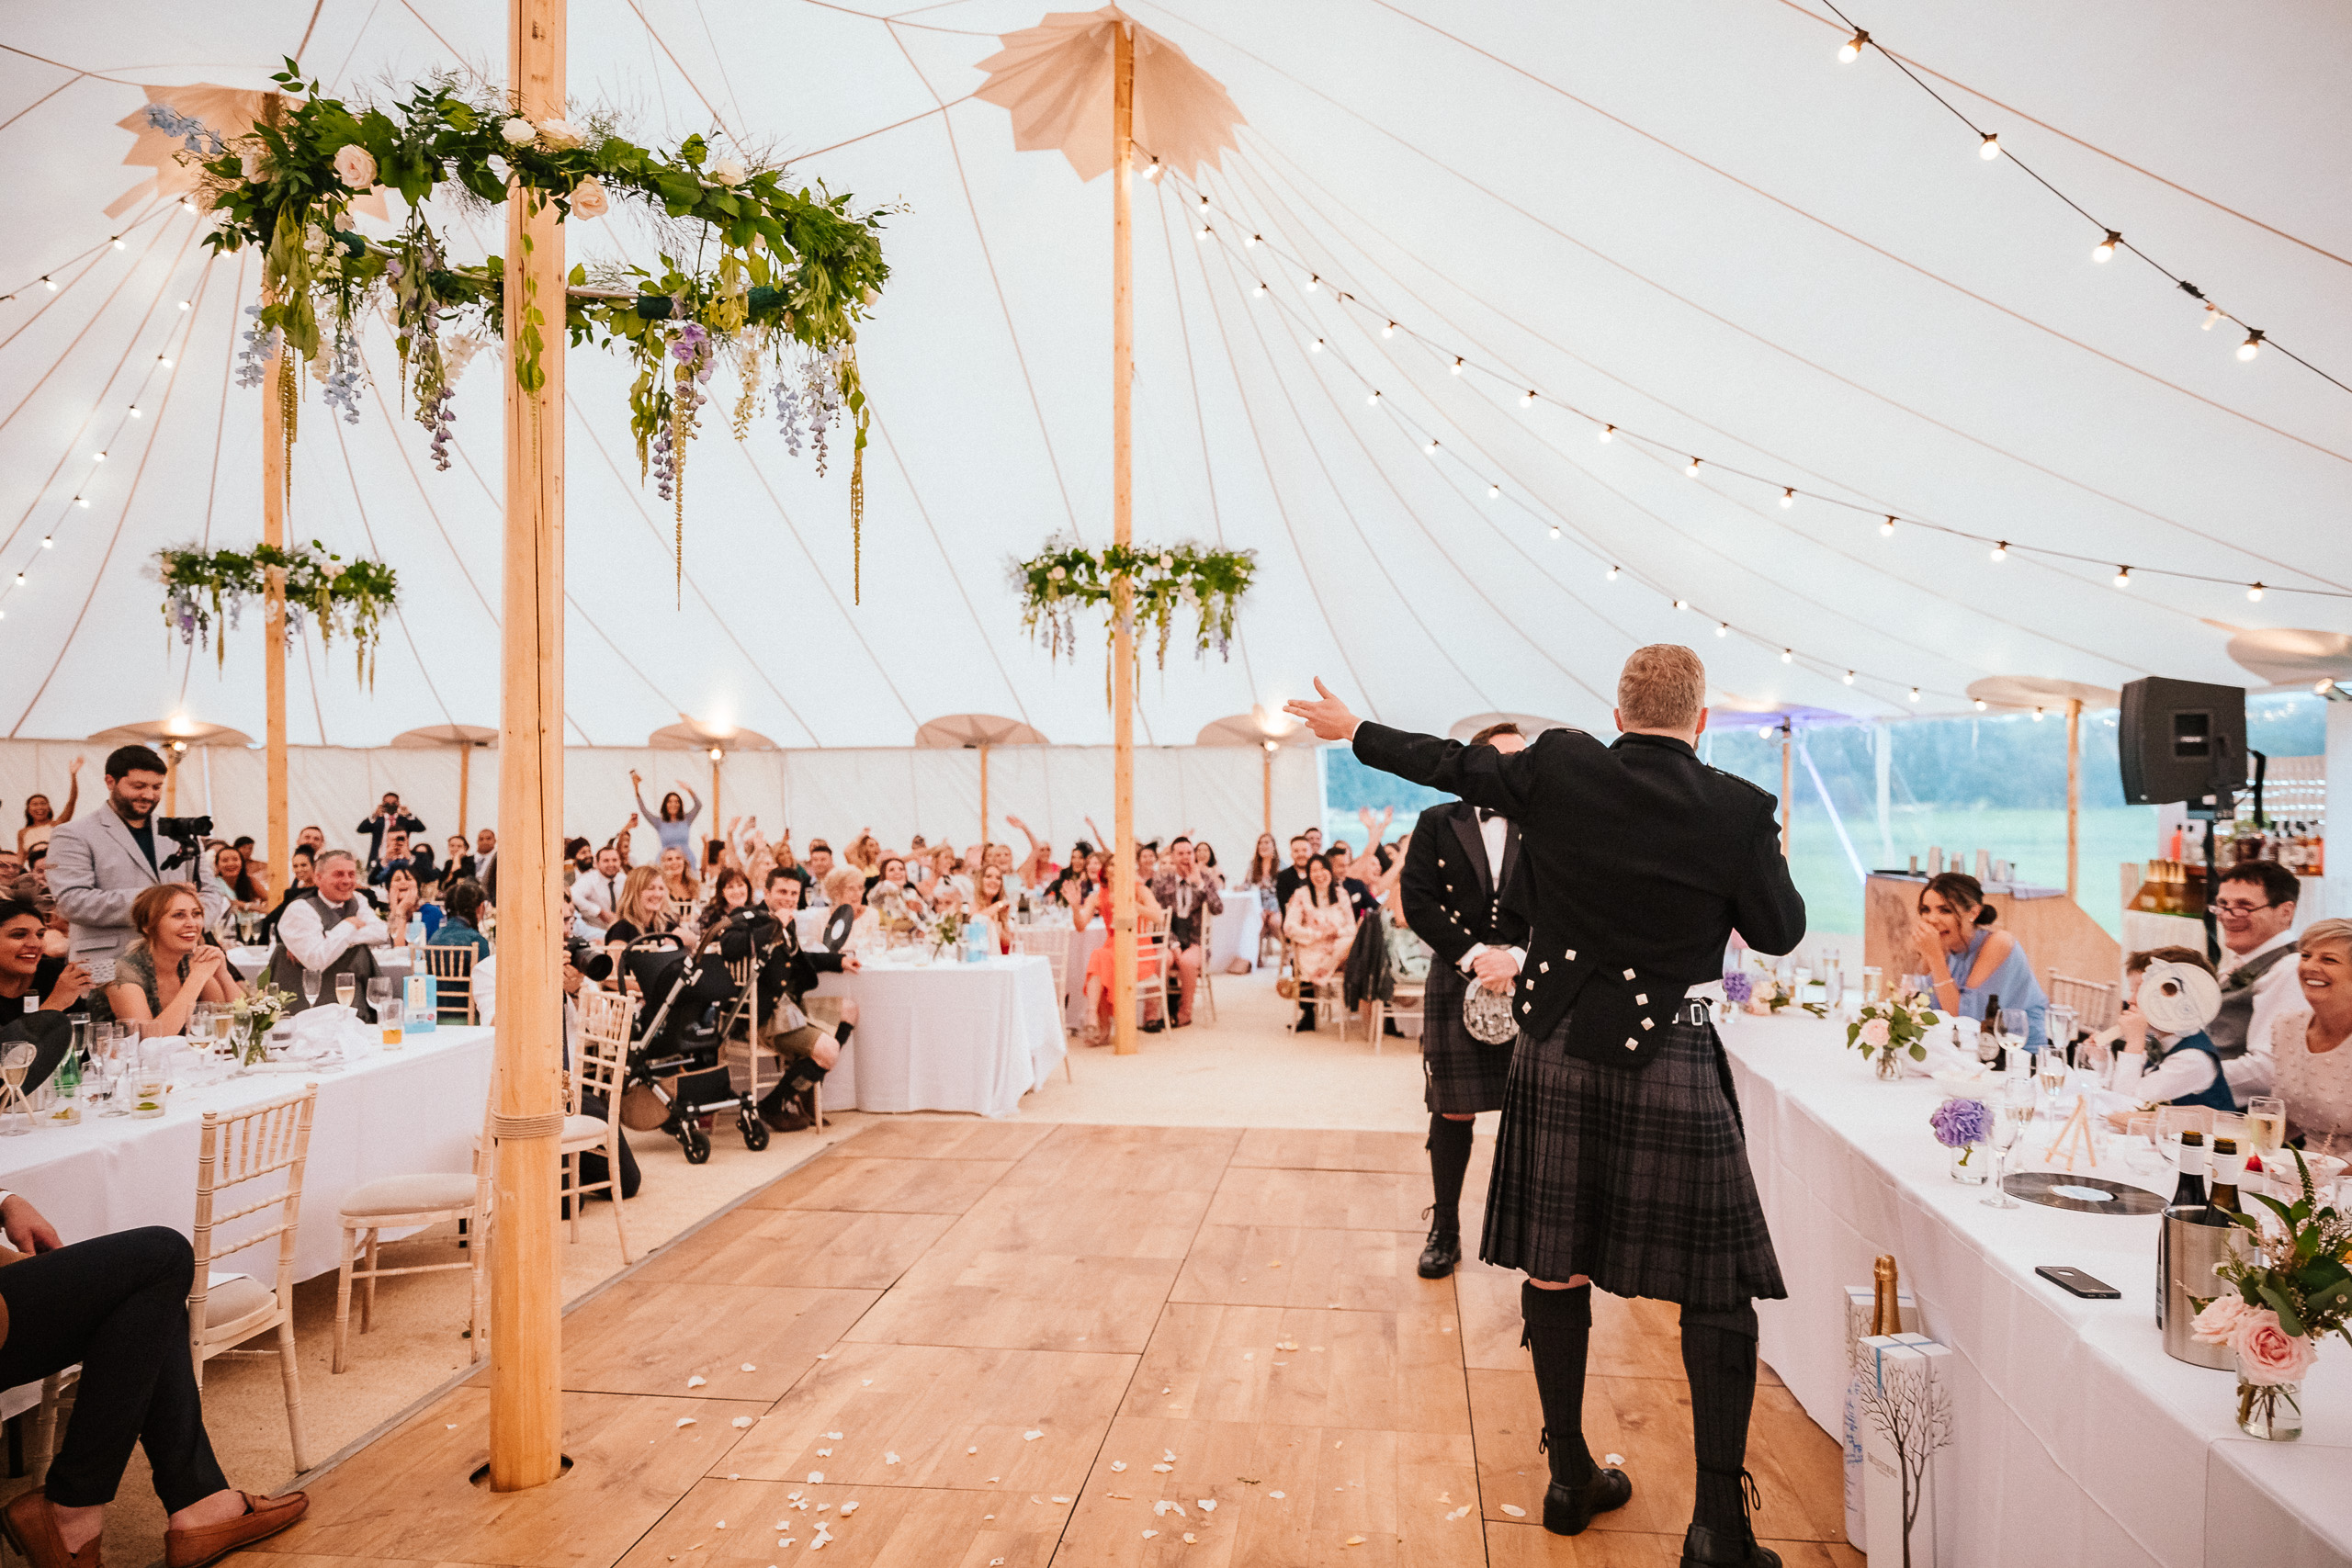 PapaKåta couple April & Martin's Sperry wedding at Arniston House, Scotland captured by Laurence Howe Photography- Sperry Tent interior. Floral Hoops by Save The Date Collective